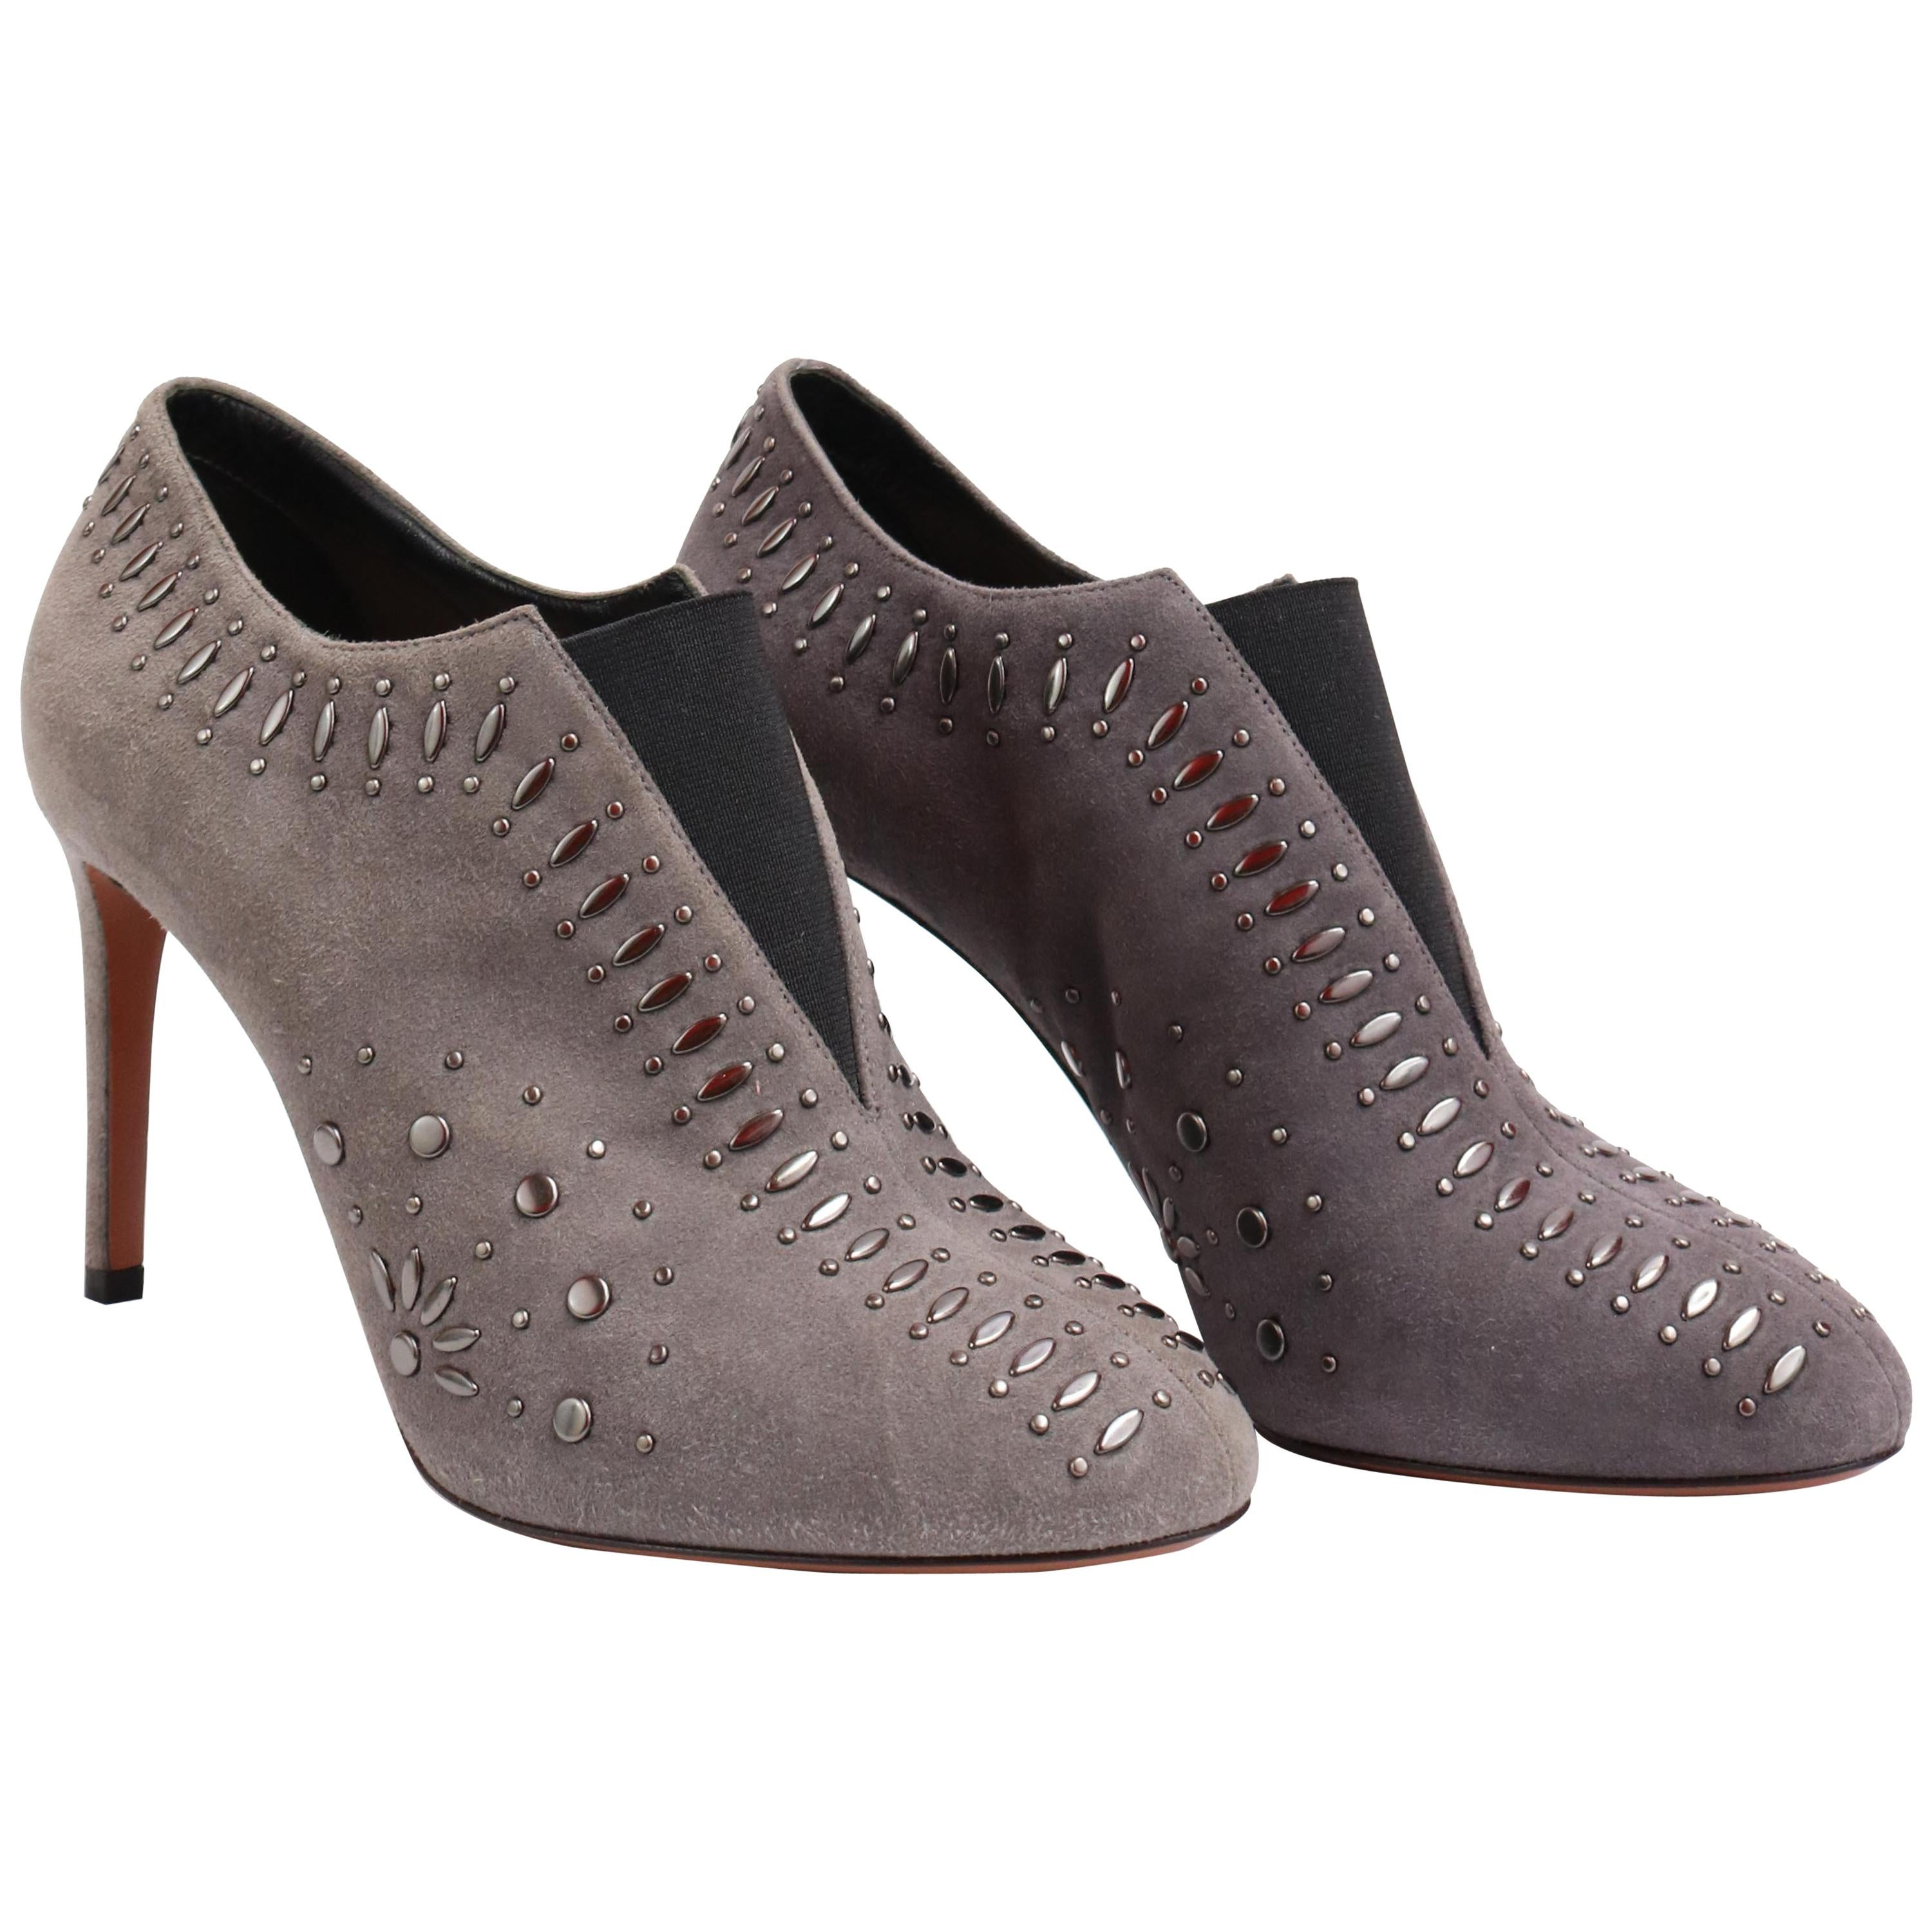 ALAIA  Grey Suede Studded Booties Size 39